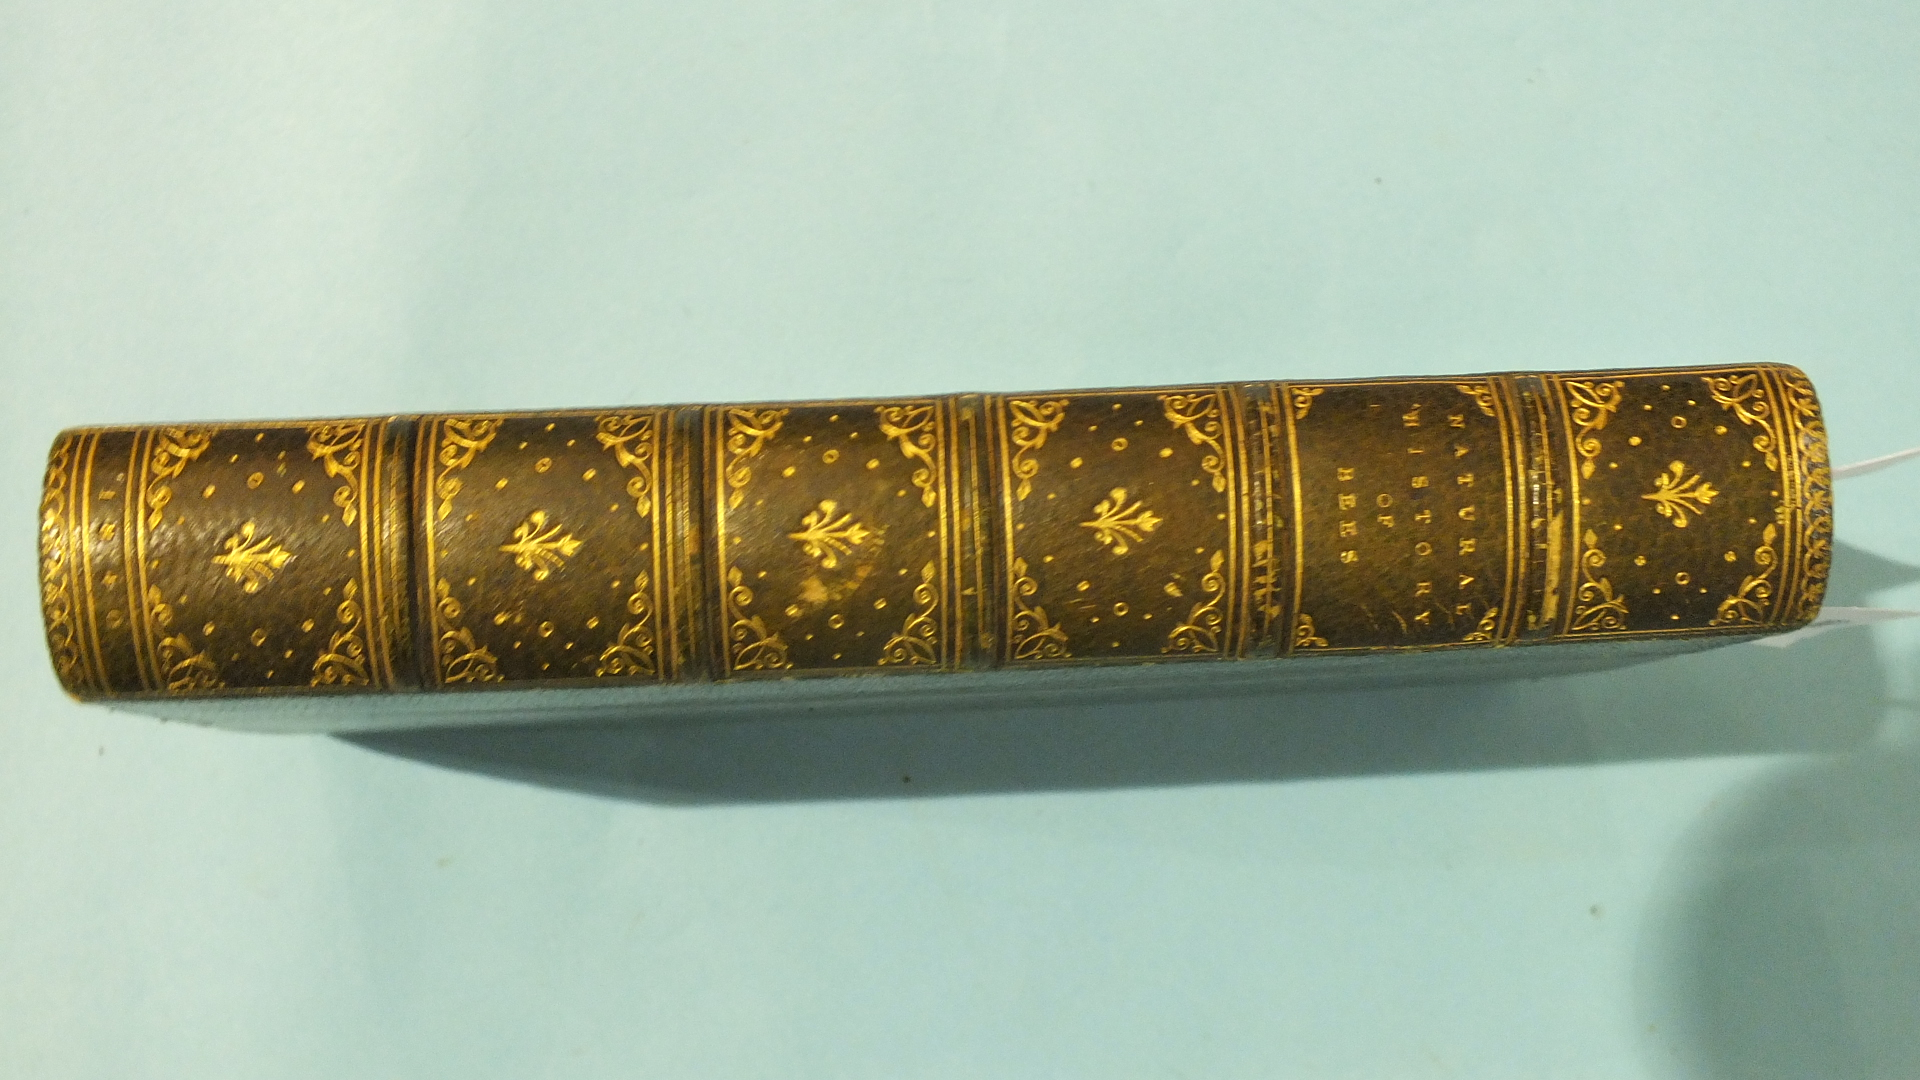 Lot 23 - Jardine (Sir William), Entomology - Bees, Vol VI The Naturalist's Library, part frontis, hd col tp